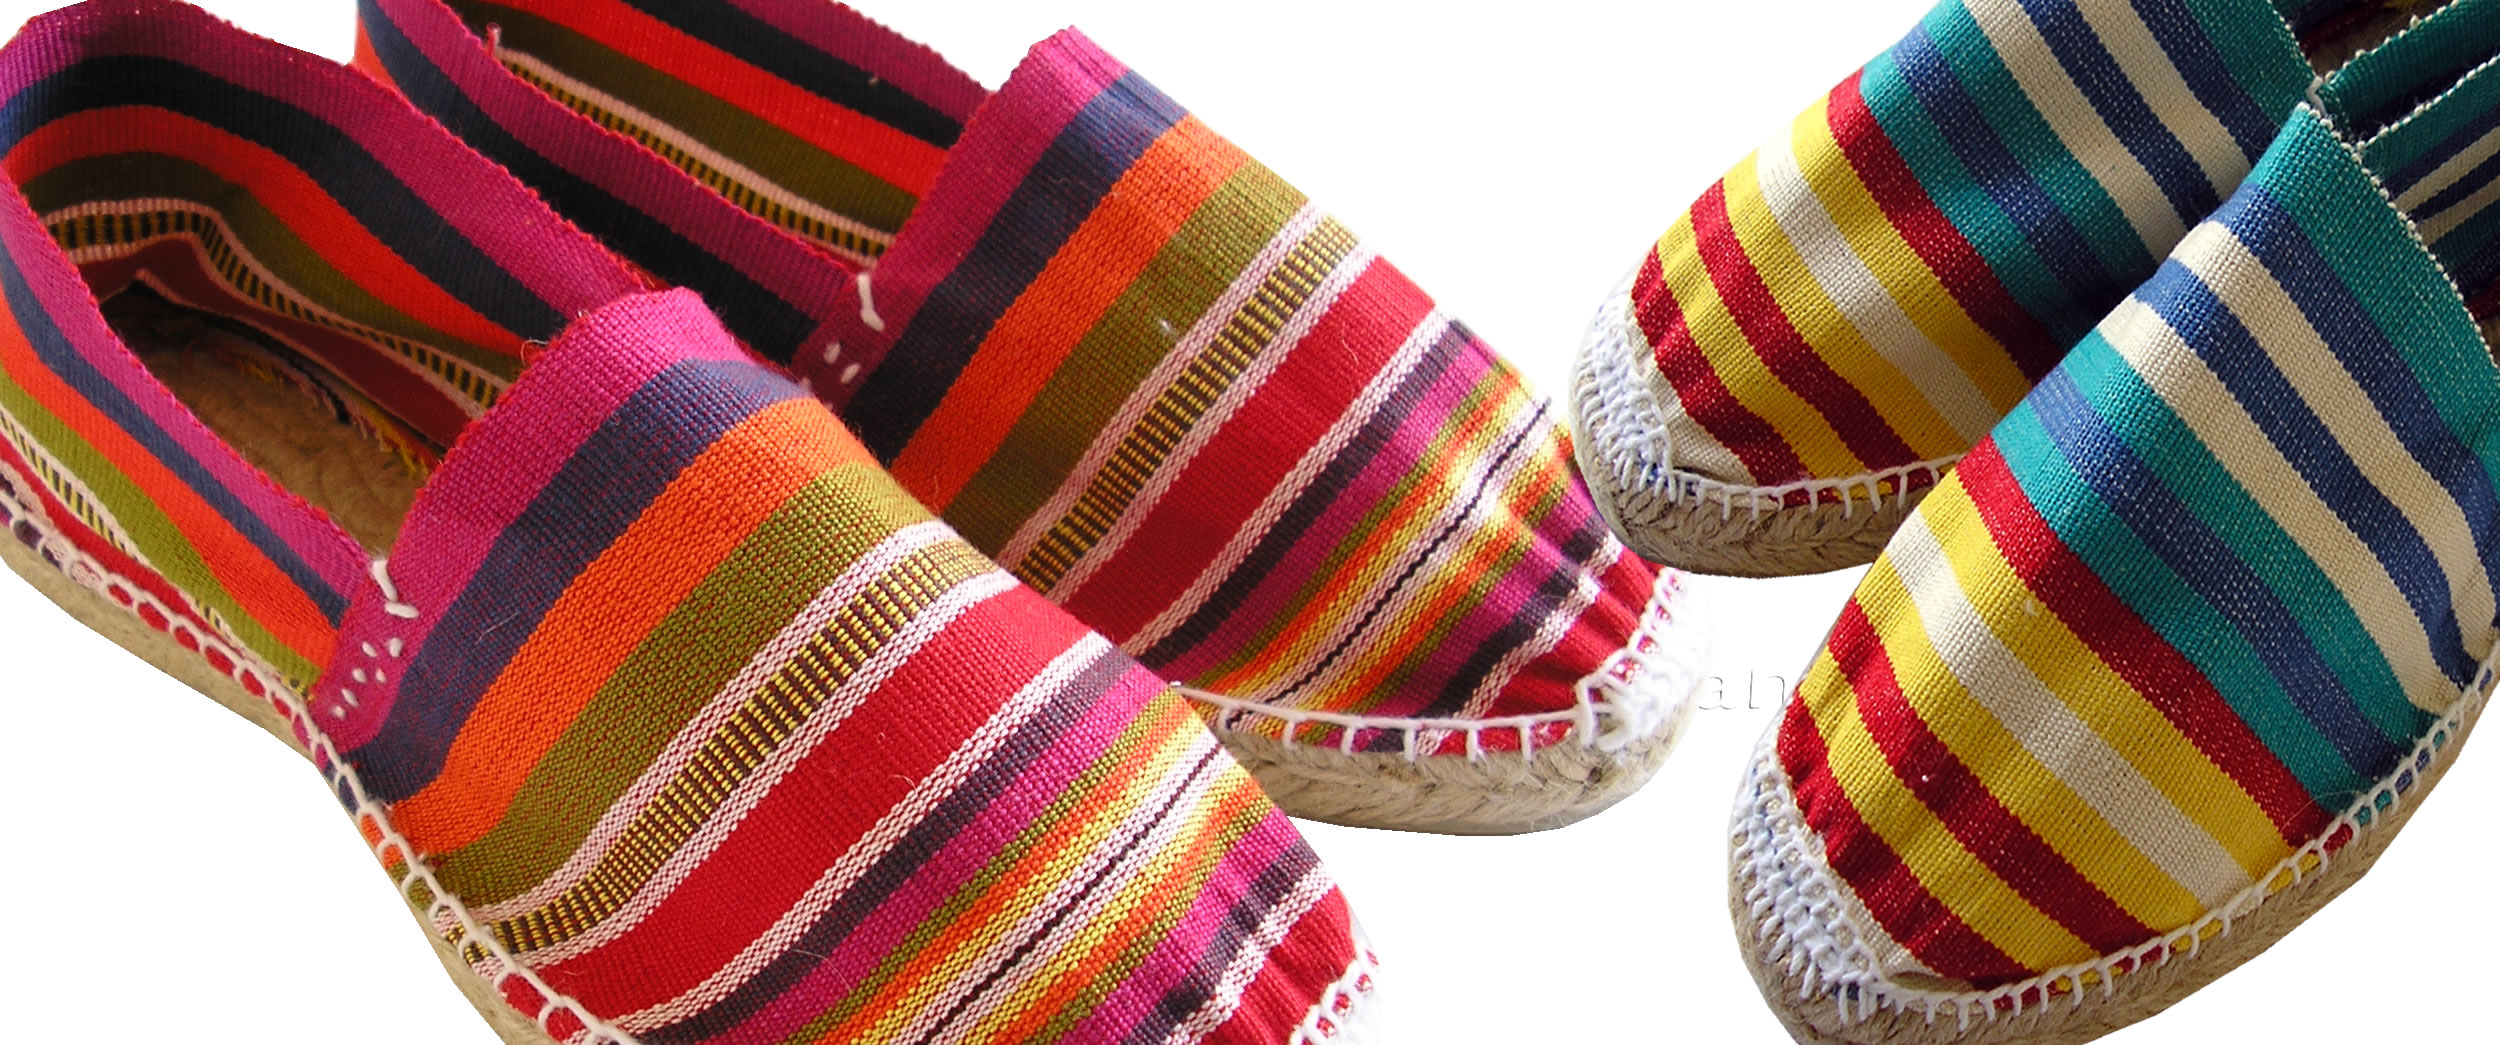 Espadrilles | Striped Espadrilles | Stripe Espadrilles with Matching Bag